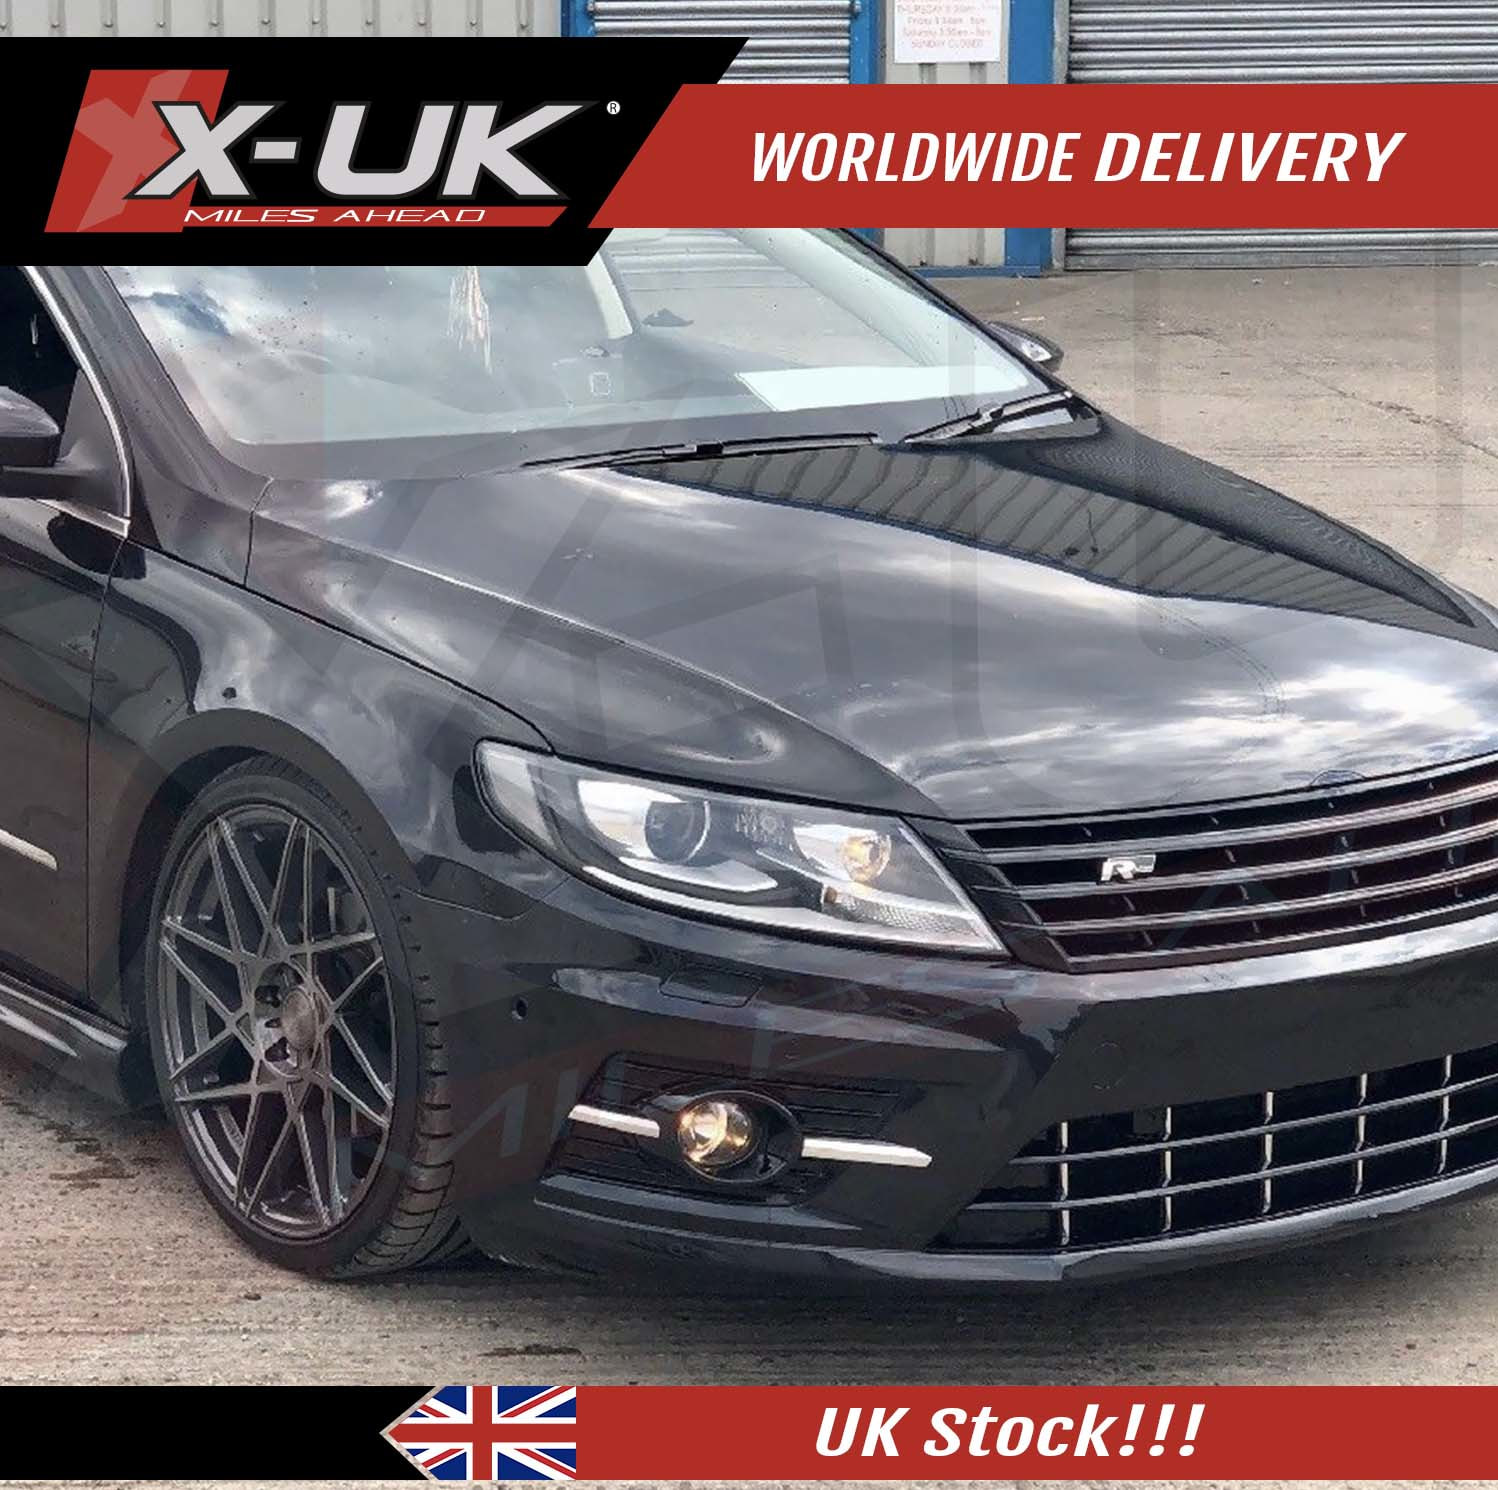 Vw Motor Swap Kits: VW Passat CC R-Line Style Body Kit Conversion